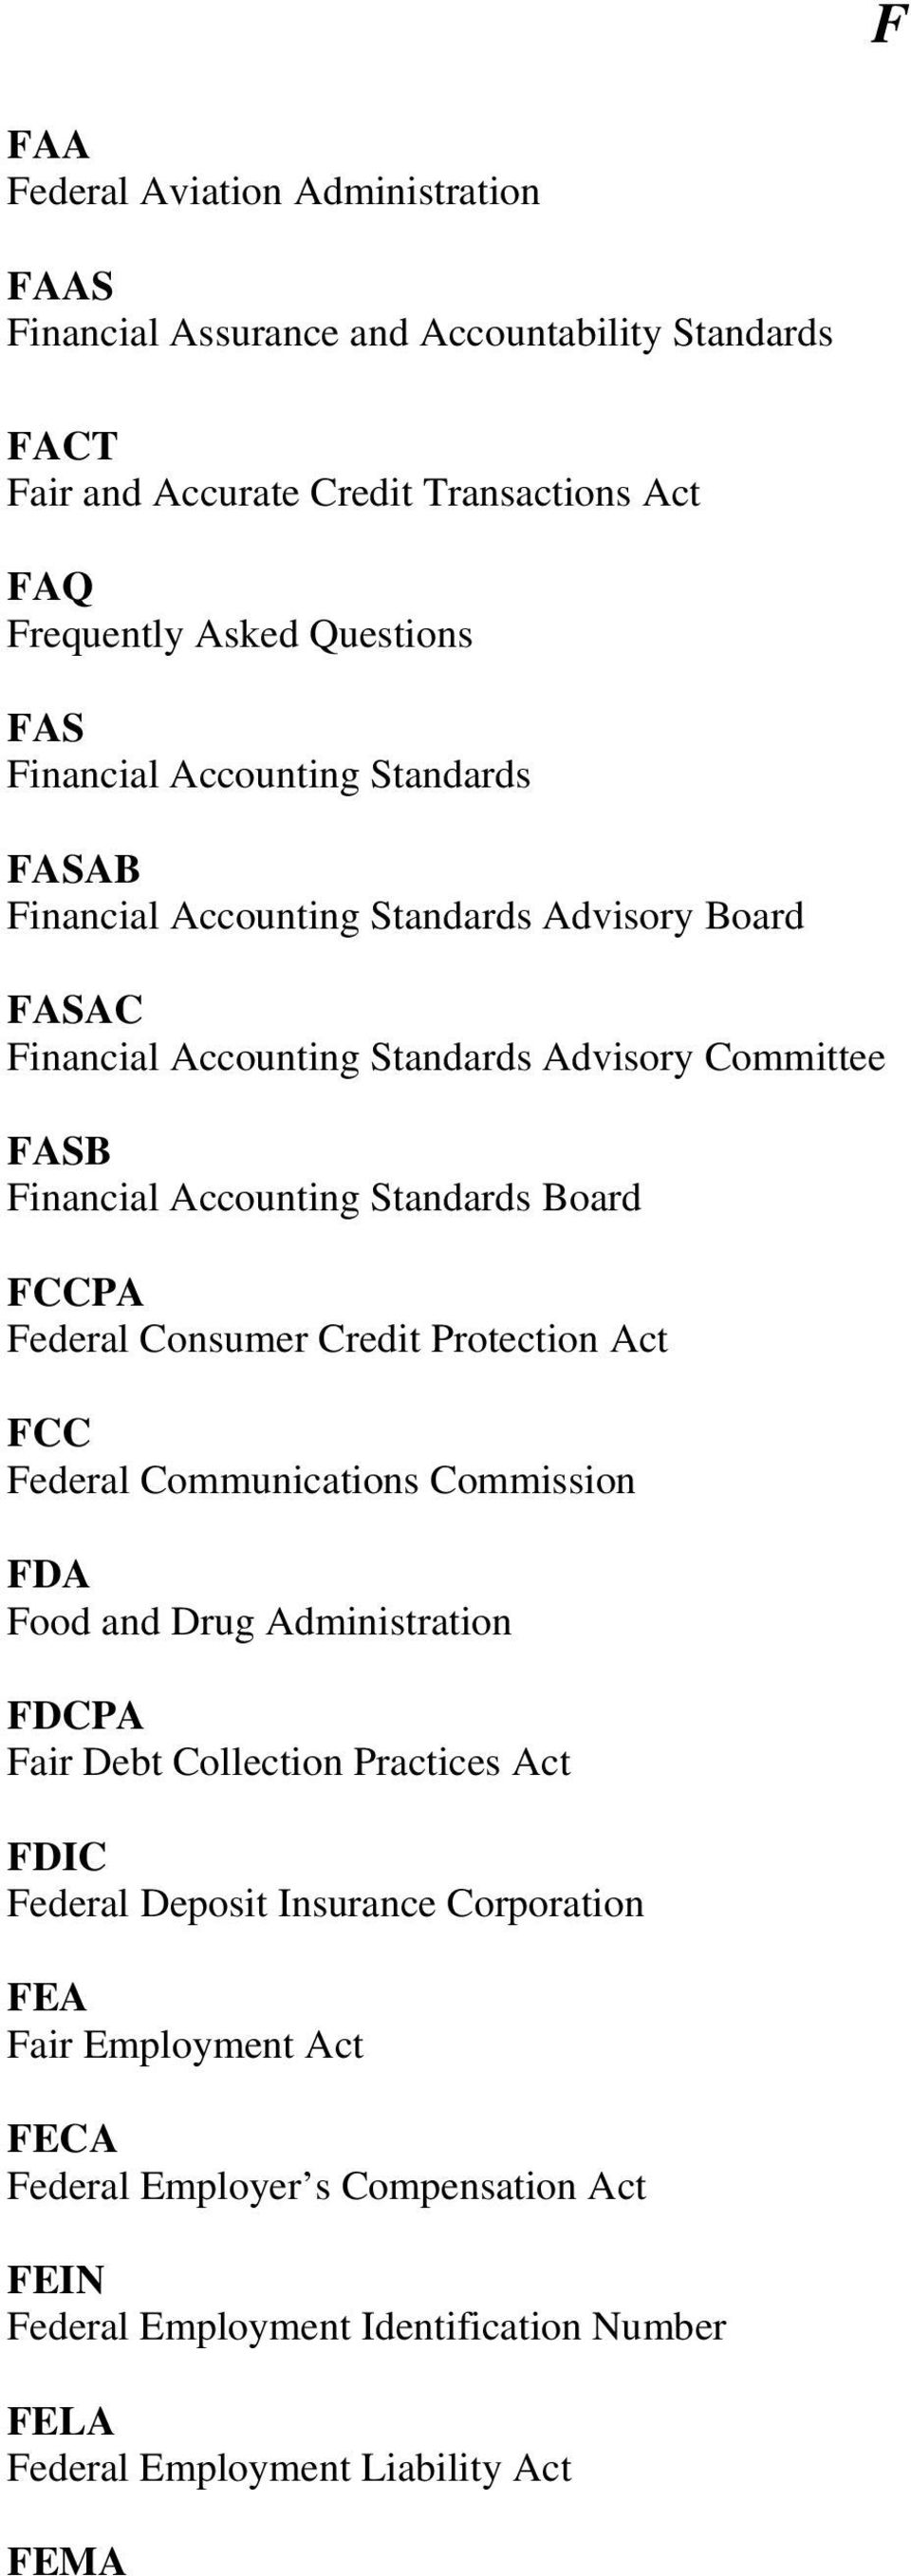 Board FCCPA Federal Consumer Credit Protection Act FCC Federal Communications Commission FDA Food and Drug Administration FDCPA Fair Debt Collection Practices Act FDIC Federal